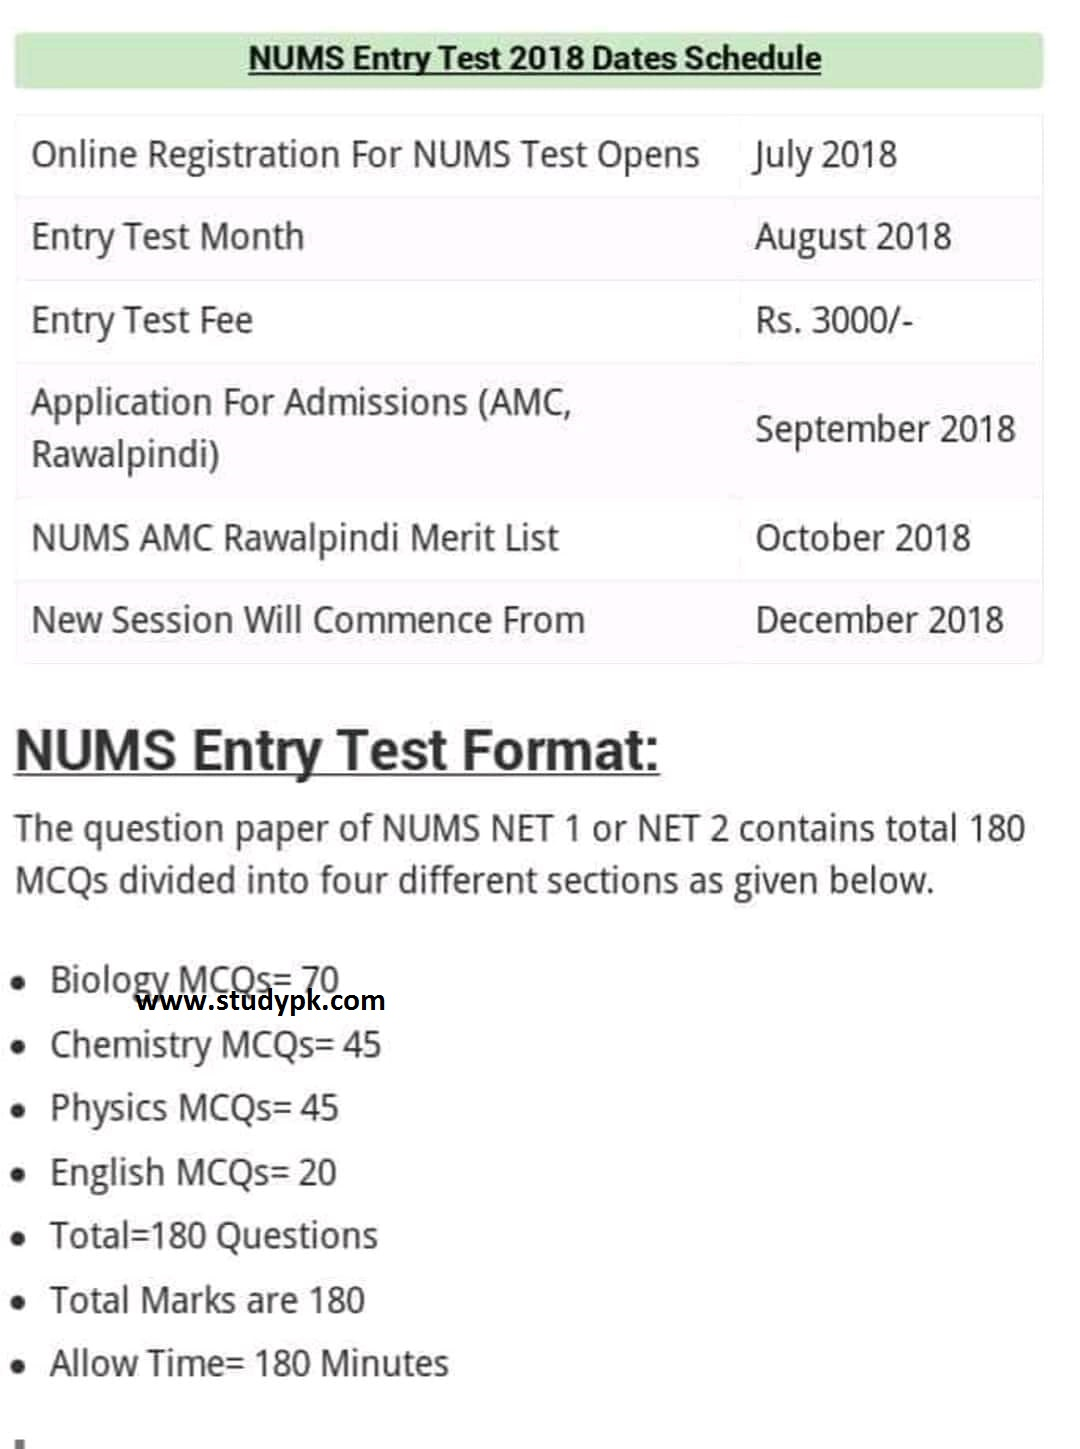 NUMS Entry Test 2018 Dates Schedule & Test Format